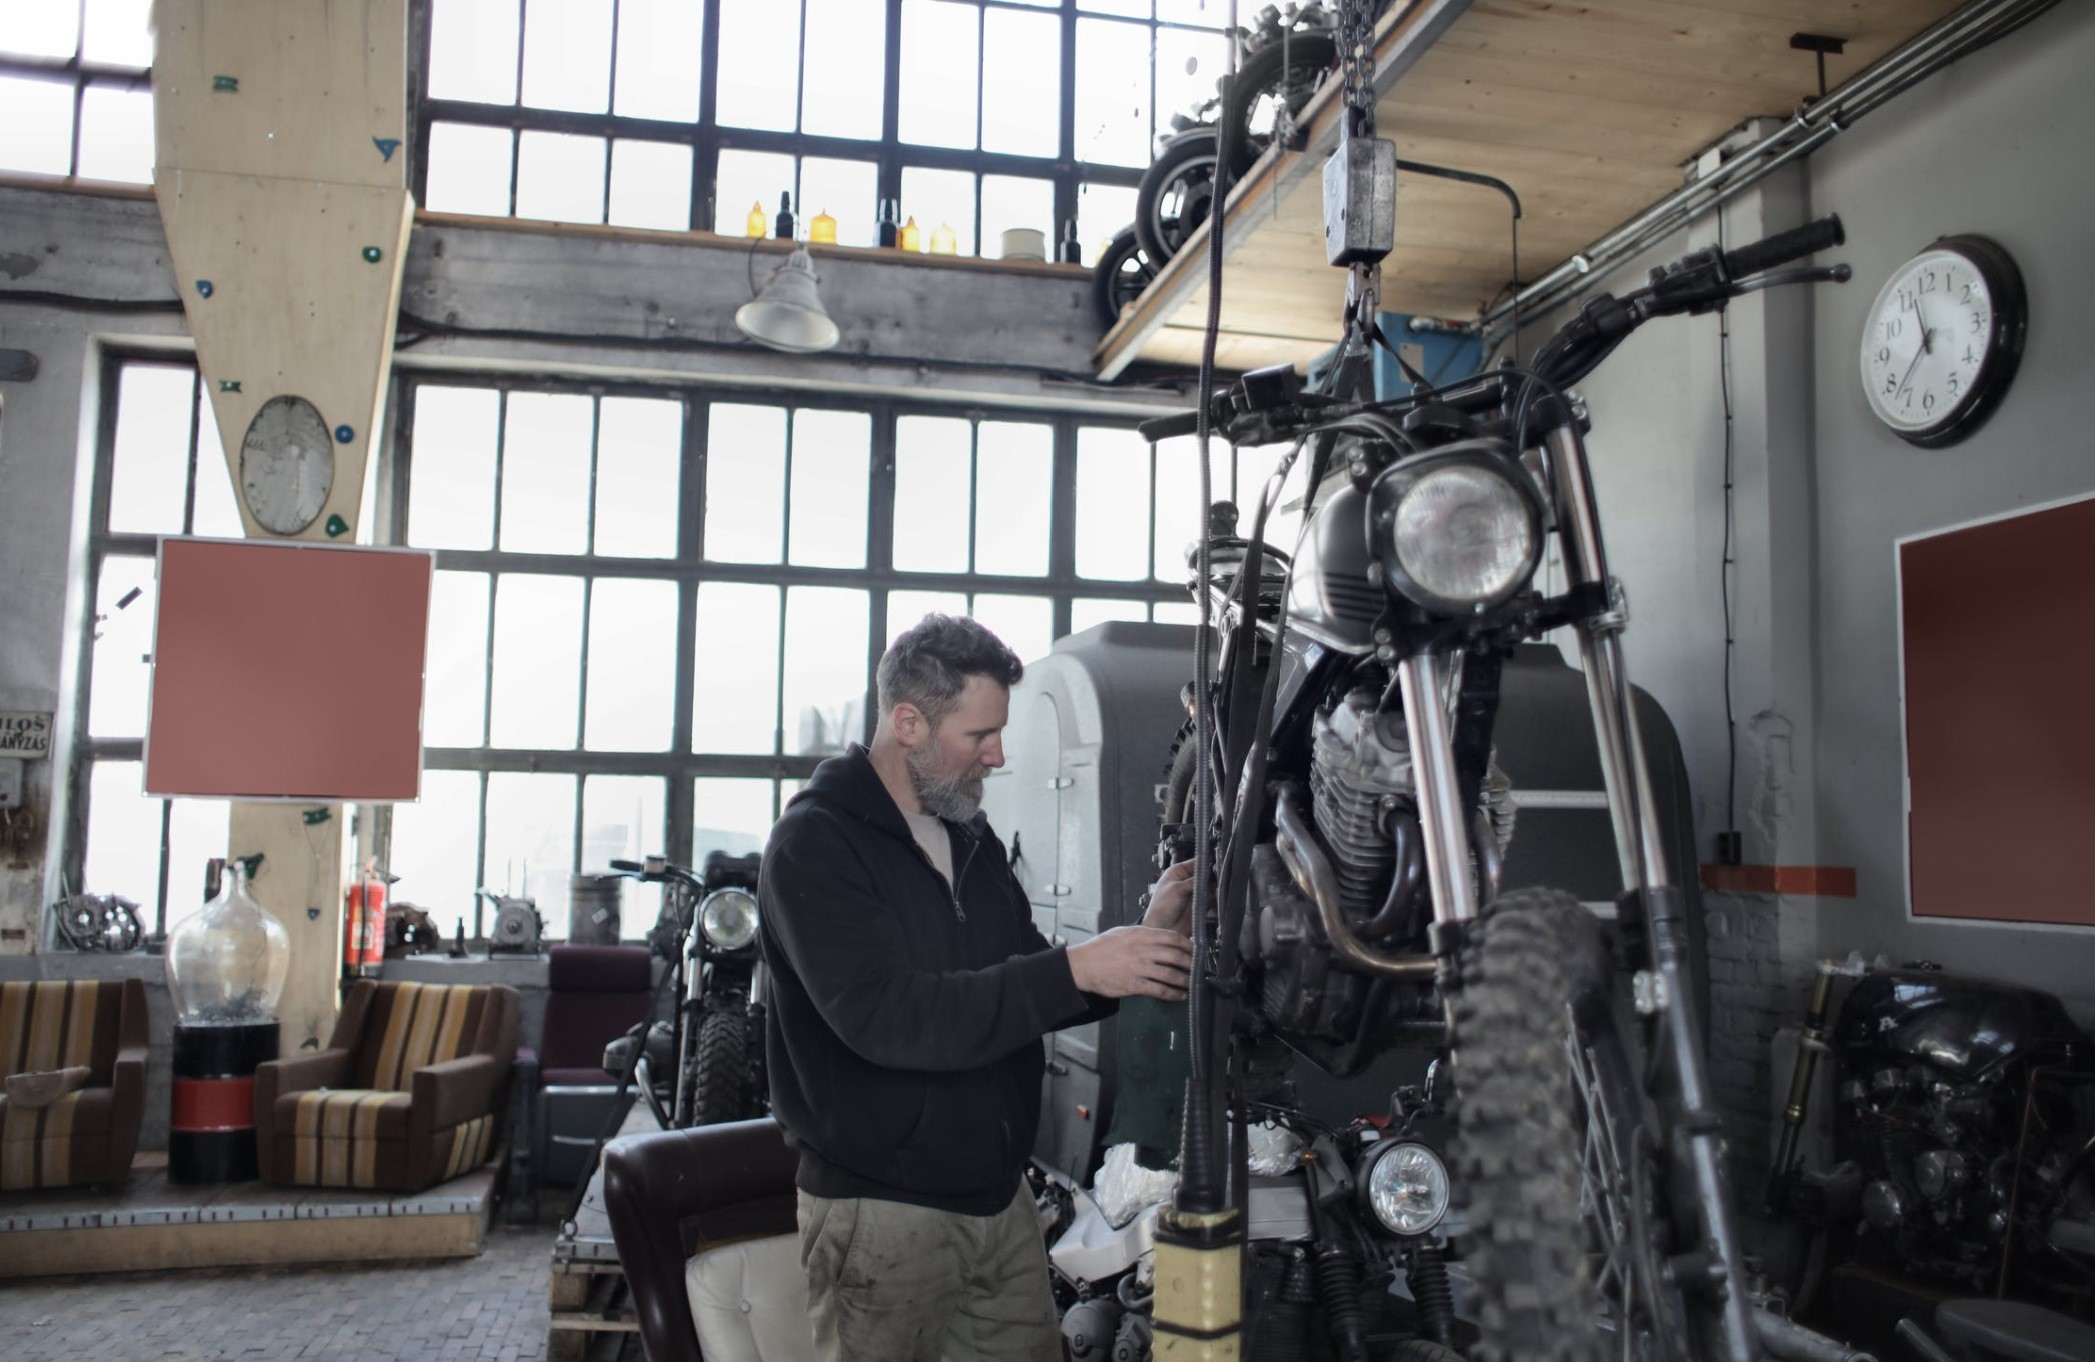 Converting Your Garage to a Motorcycle Haven